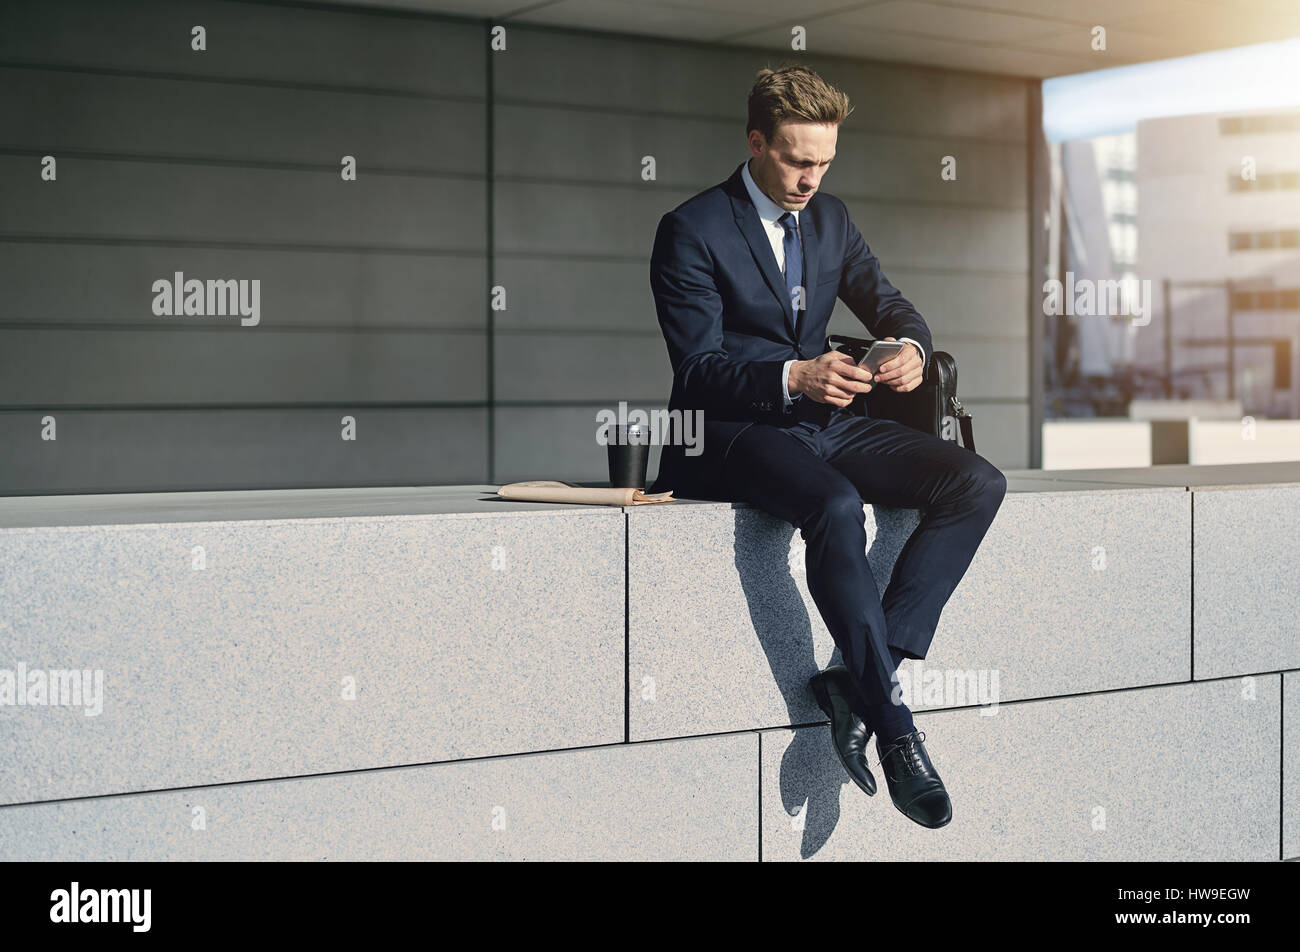 Self-confident businessman with arms crossed searching in smartphone - Stock Image